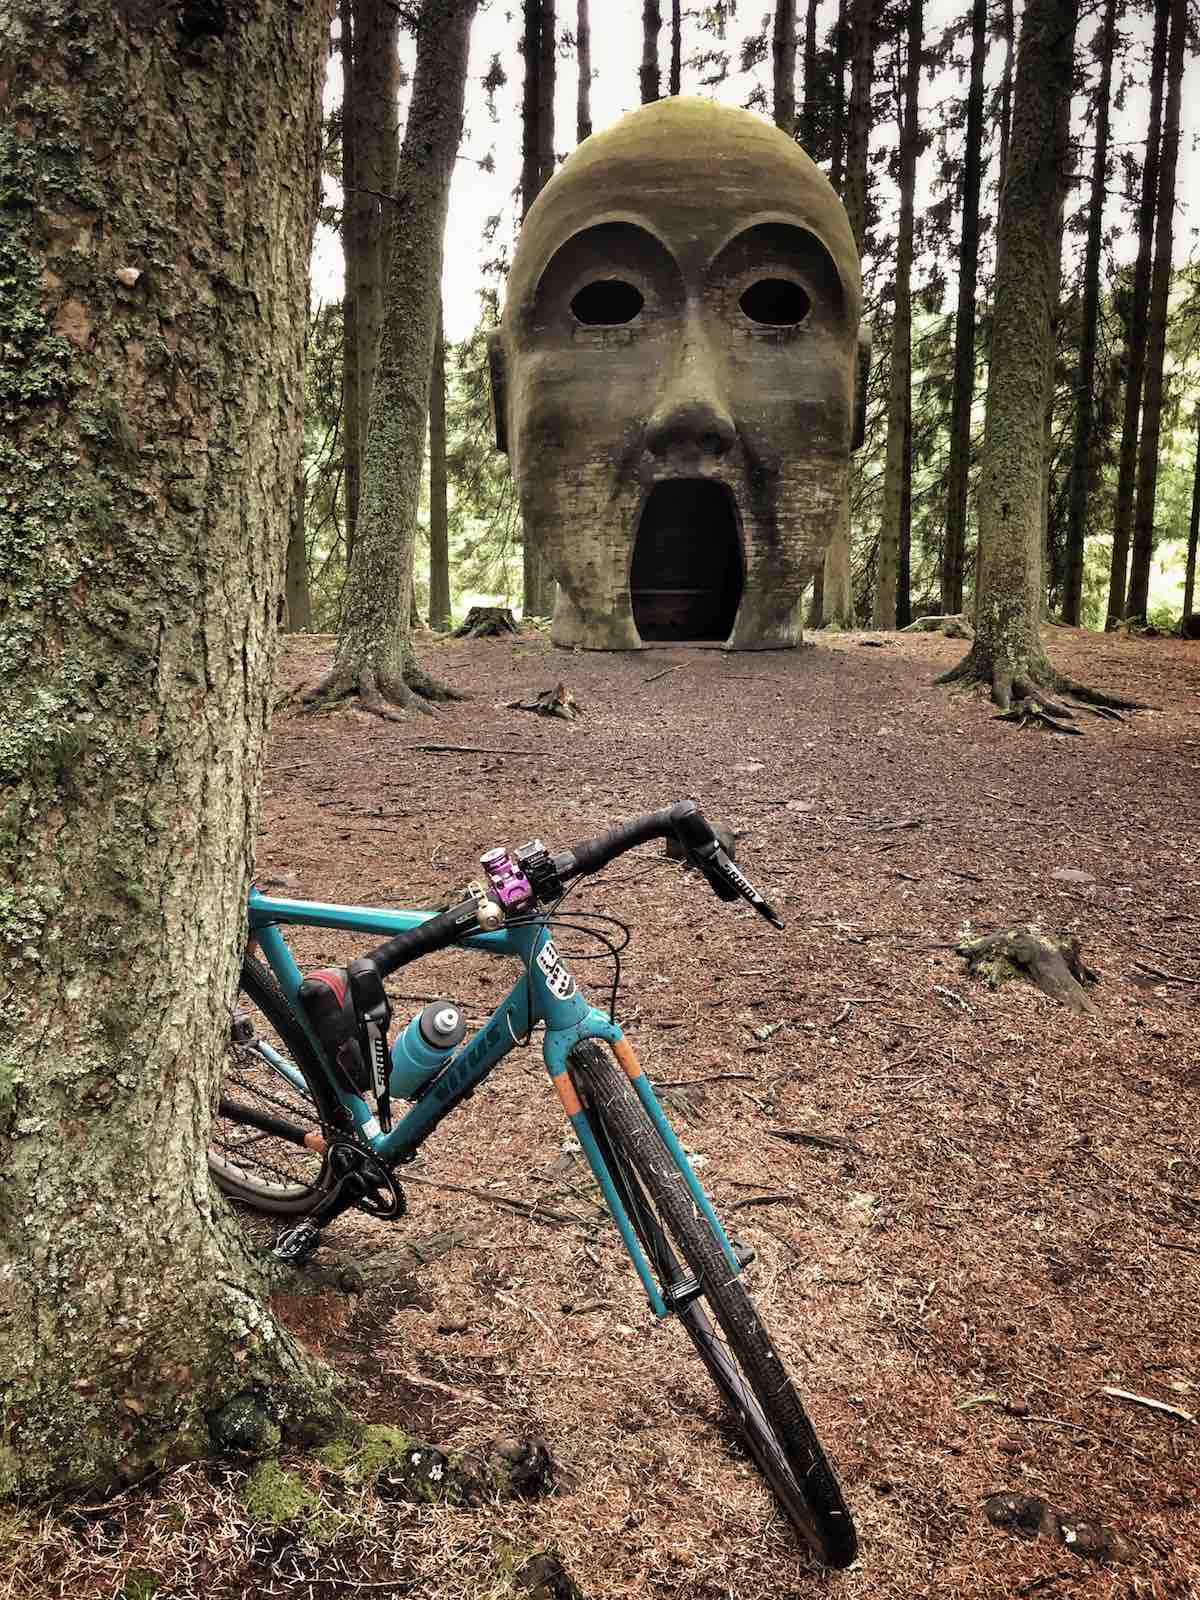 bikerumor pic of the day Kielder Forest riding a part of the dirty reiver trail in Northumberland, UK.